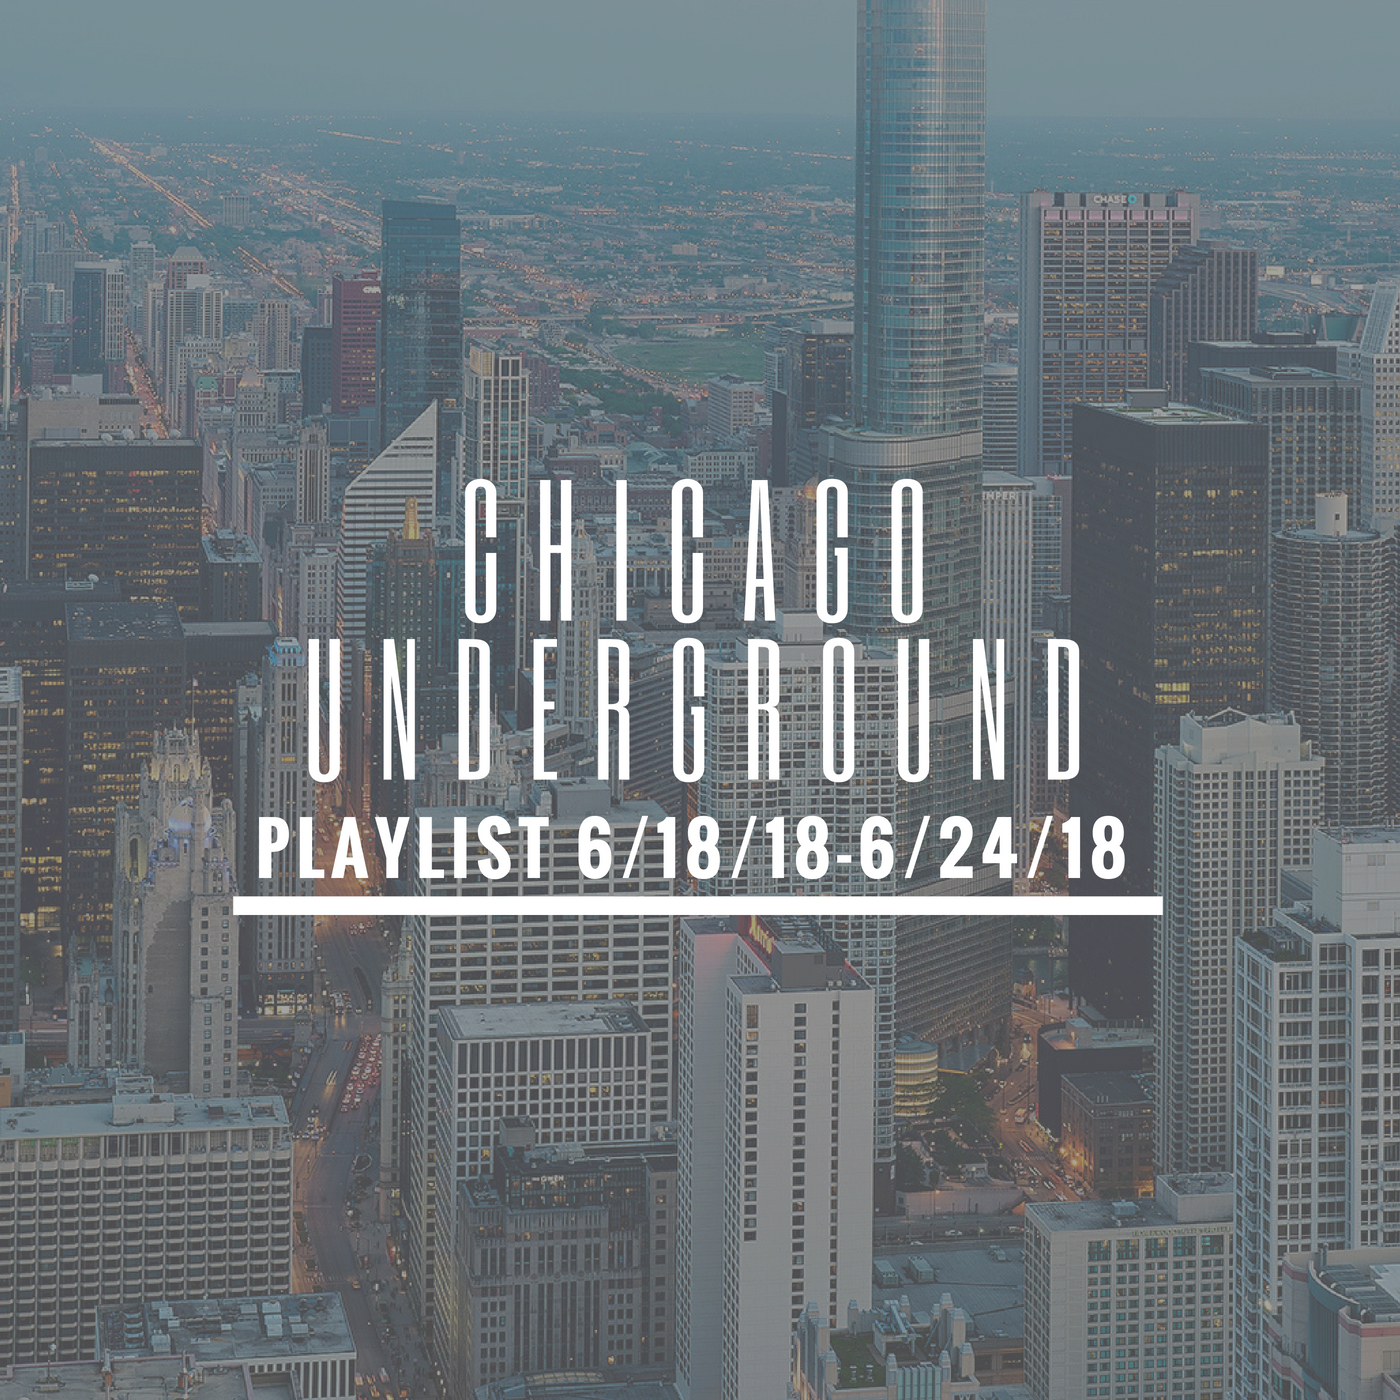 Underground Chicago Hip Hop Playlist: 6/18/18-6/24/18